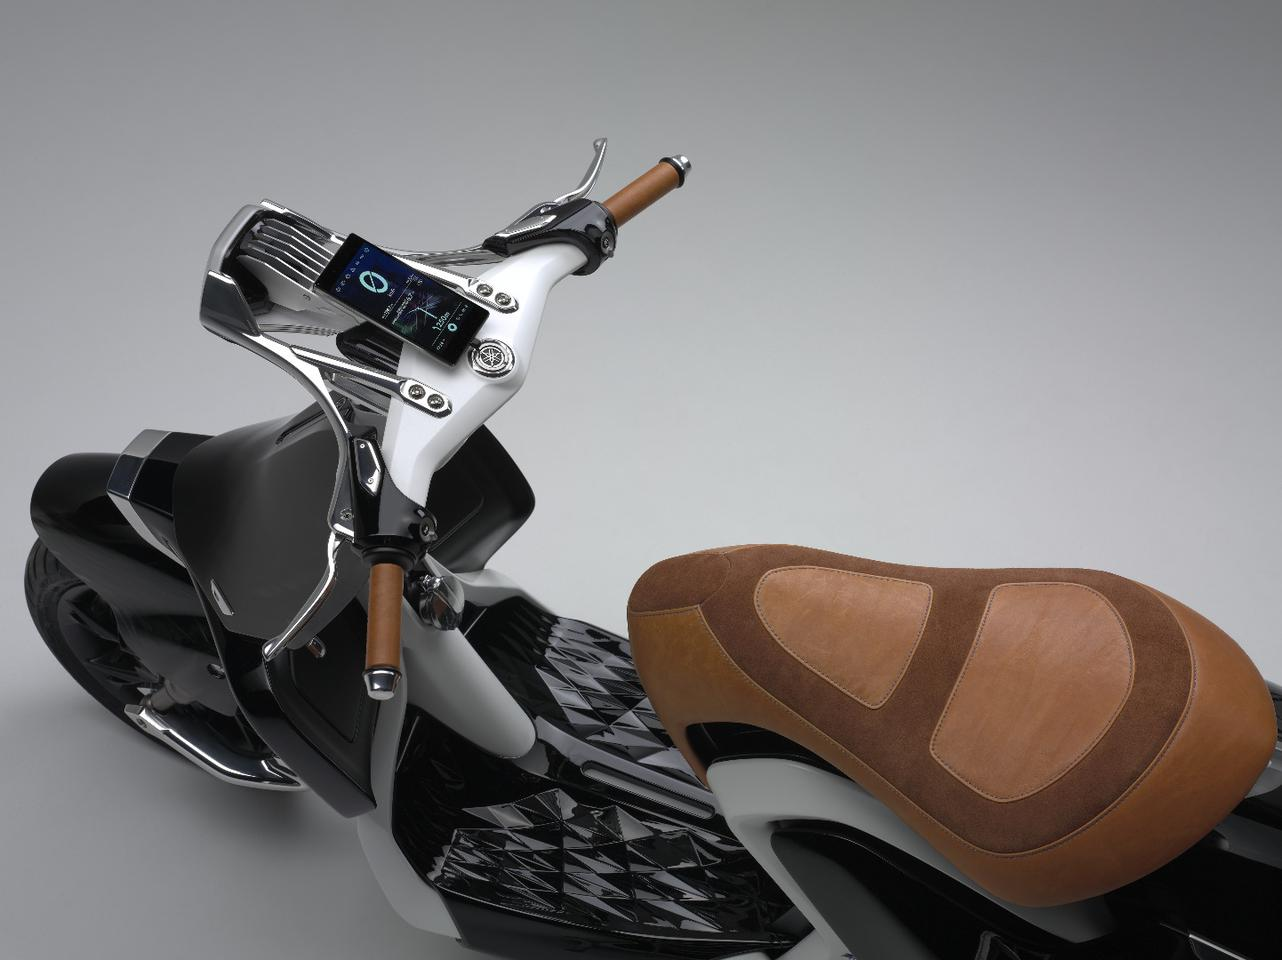 The handlebars and headlight design of the Yamaha 04Gen is as elaborate as rest of its body